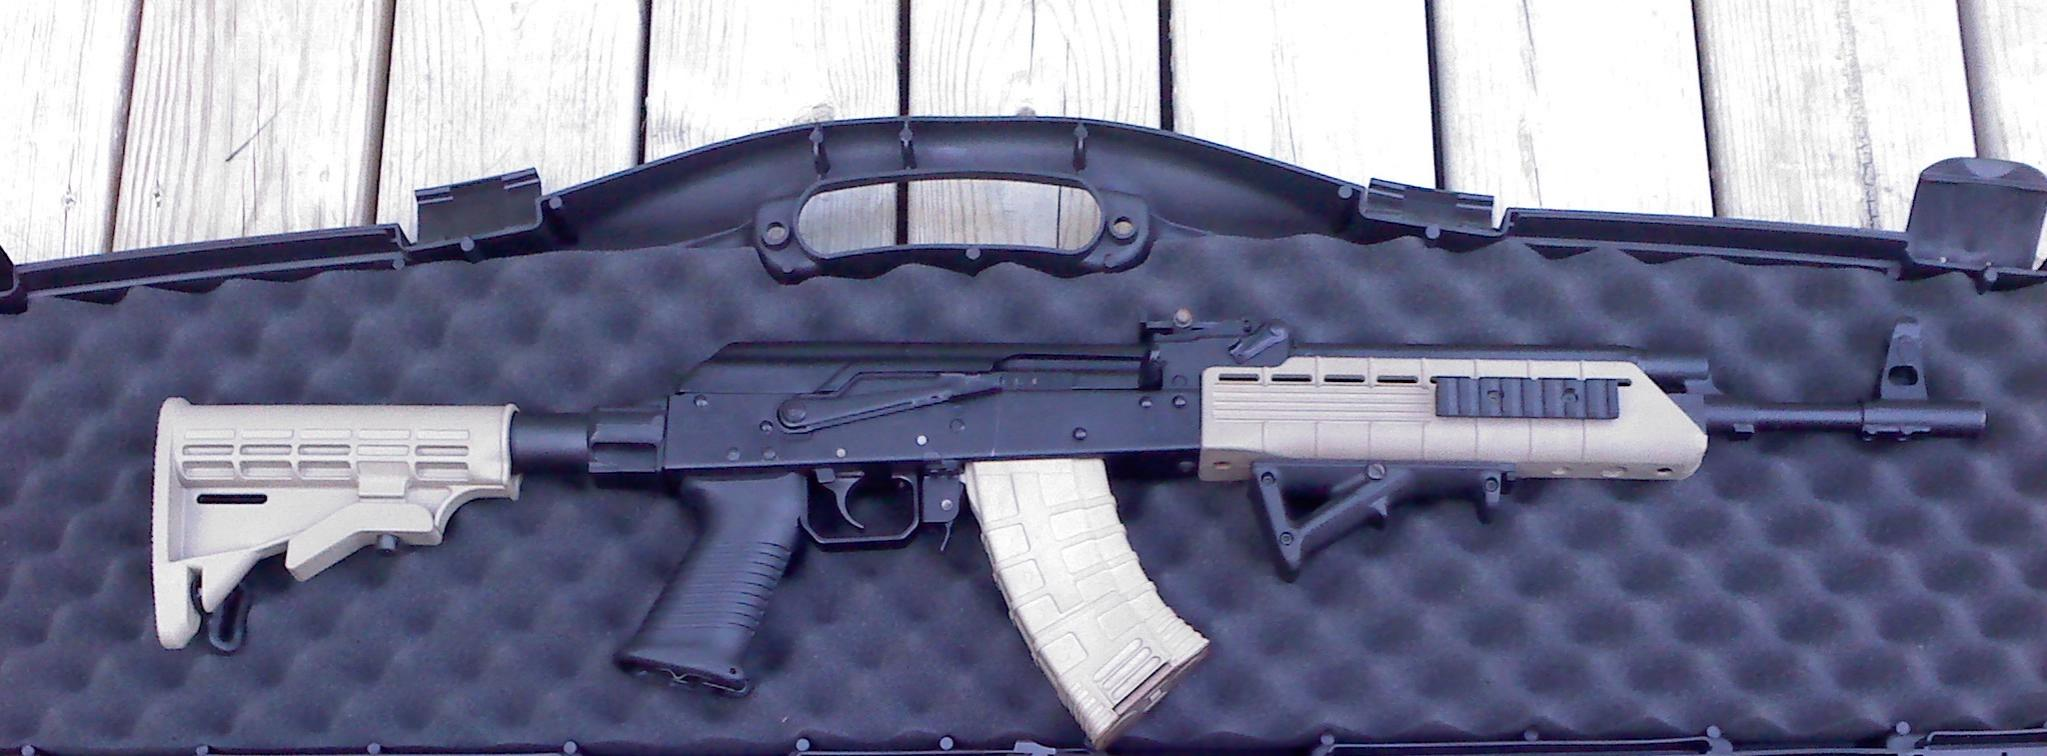 Furniture options for Milled AK | Springfield XD Forum